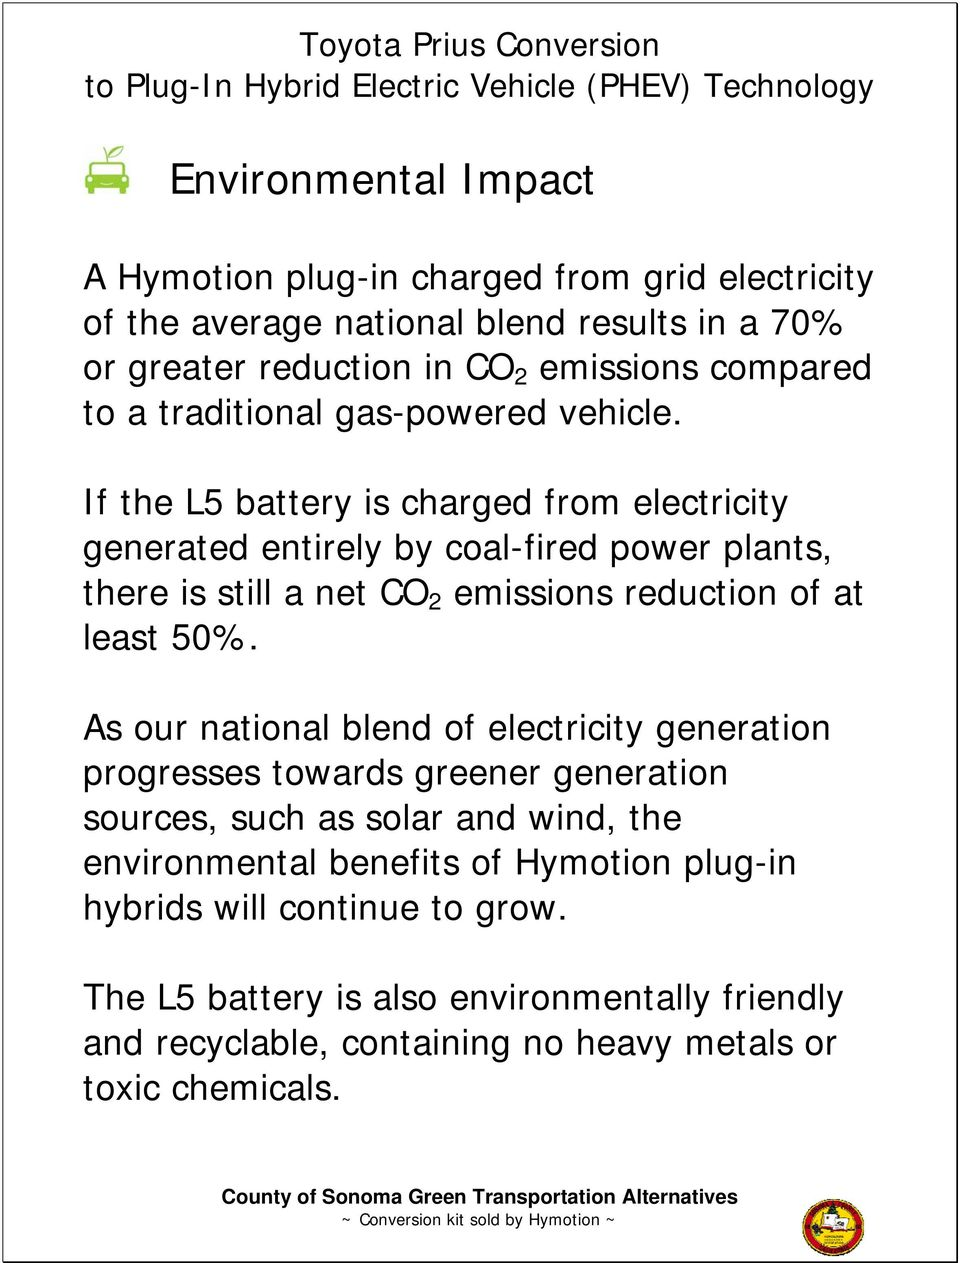 If the L5 battery is charged from electricity generated entirely by coal-fired power plants, there is still a net CO 2 emissions reduction of at least 50%.